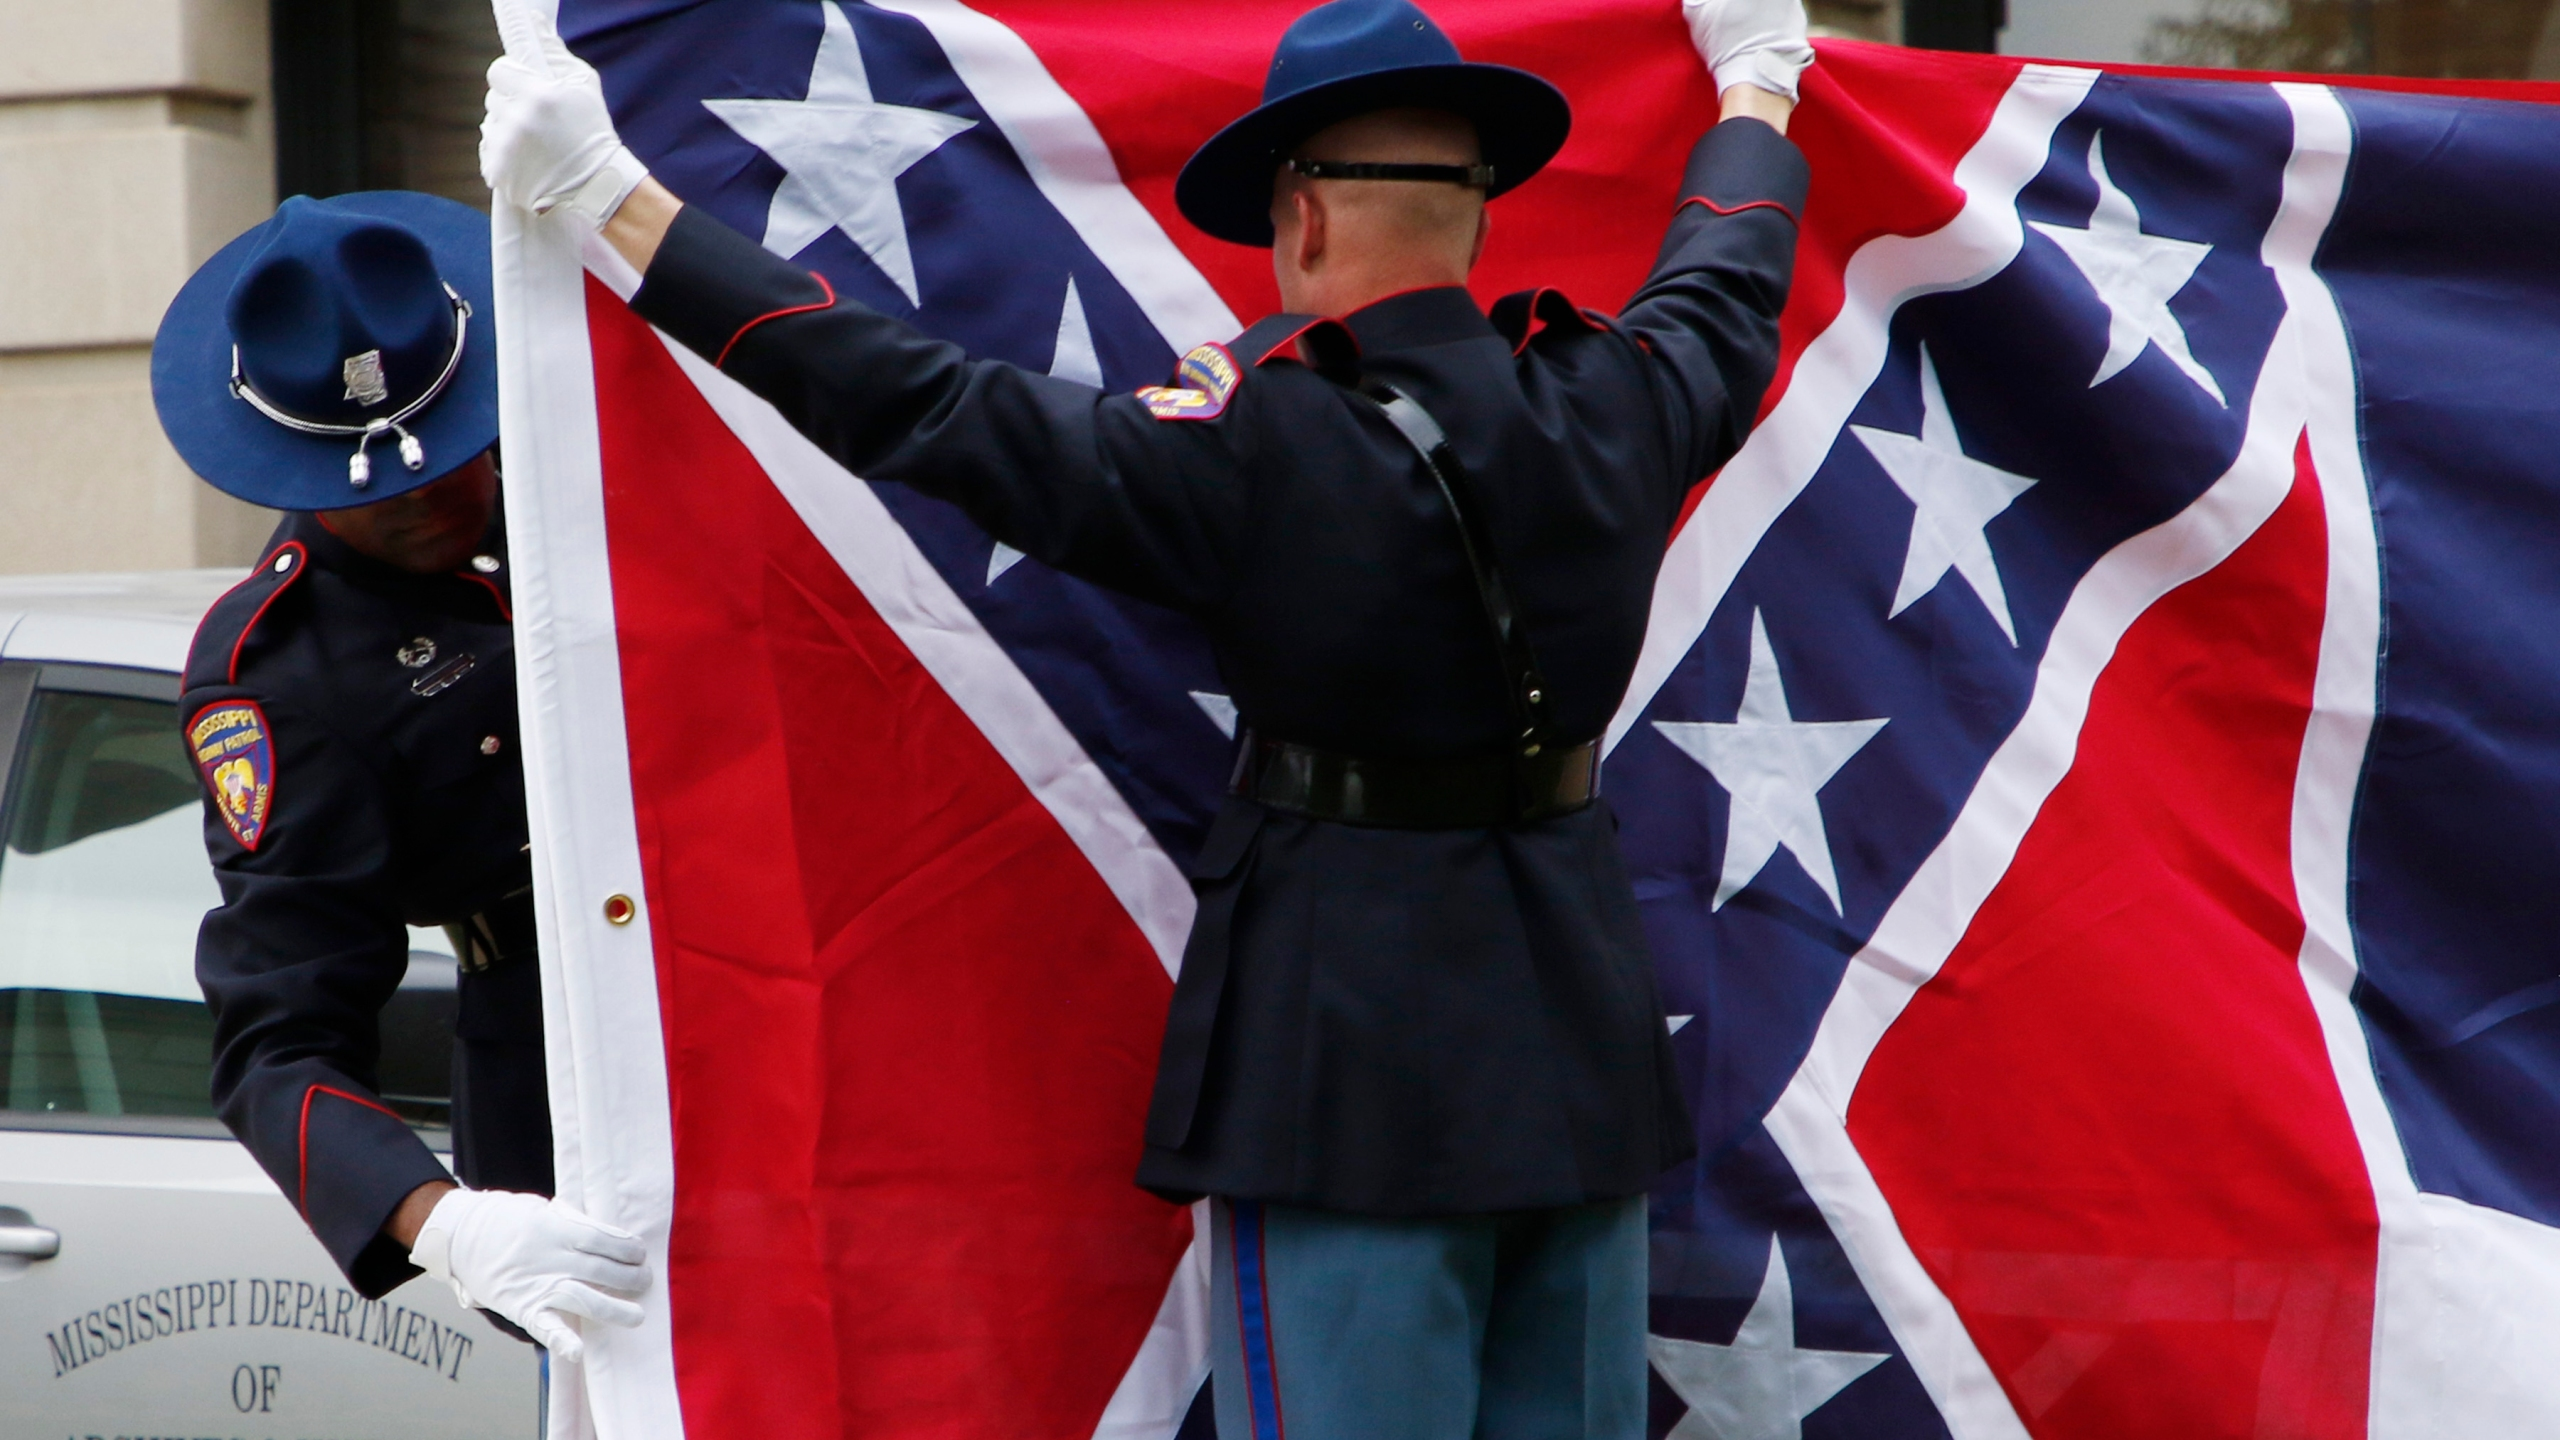 A Mississippi Highway Safety Patrol honor guard folds the retired Mississippi state flag after it was raised over the Capitol grounds one final time in Jackson, Miss., on July 1, 2020. Vestiges of the Civil War and Jim Crow segregation are coming down across the Old Confederacy as part of a national reckoning on race and white supremacy. A diversifying Democratic Party hopes the changes in symbols are part of a more fundamental shift in a region that dominated by Republicans for a generation – and white conservative Democrats a century before that. (AP Photo/Rogelio V. Solis)